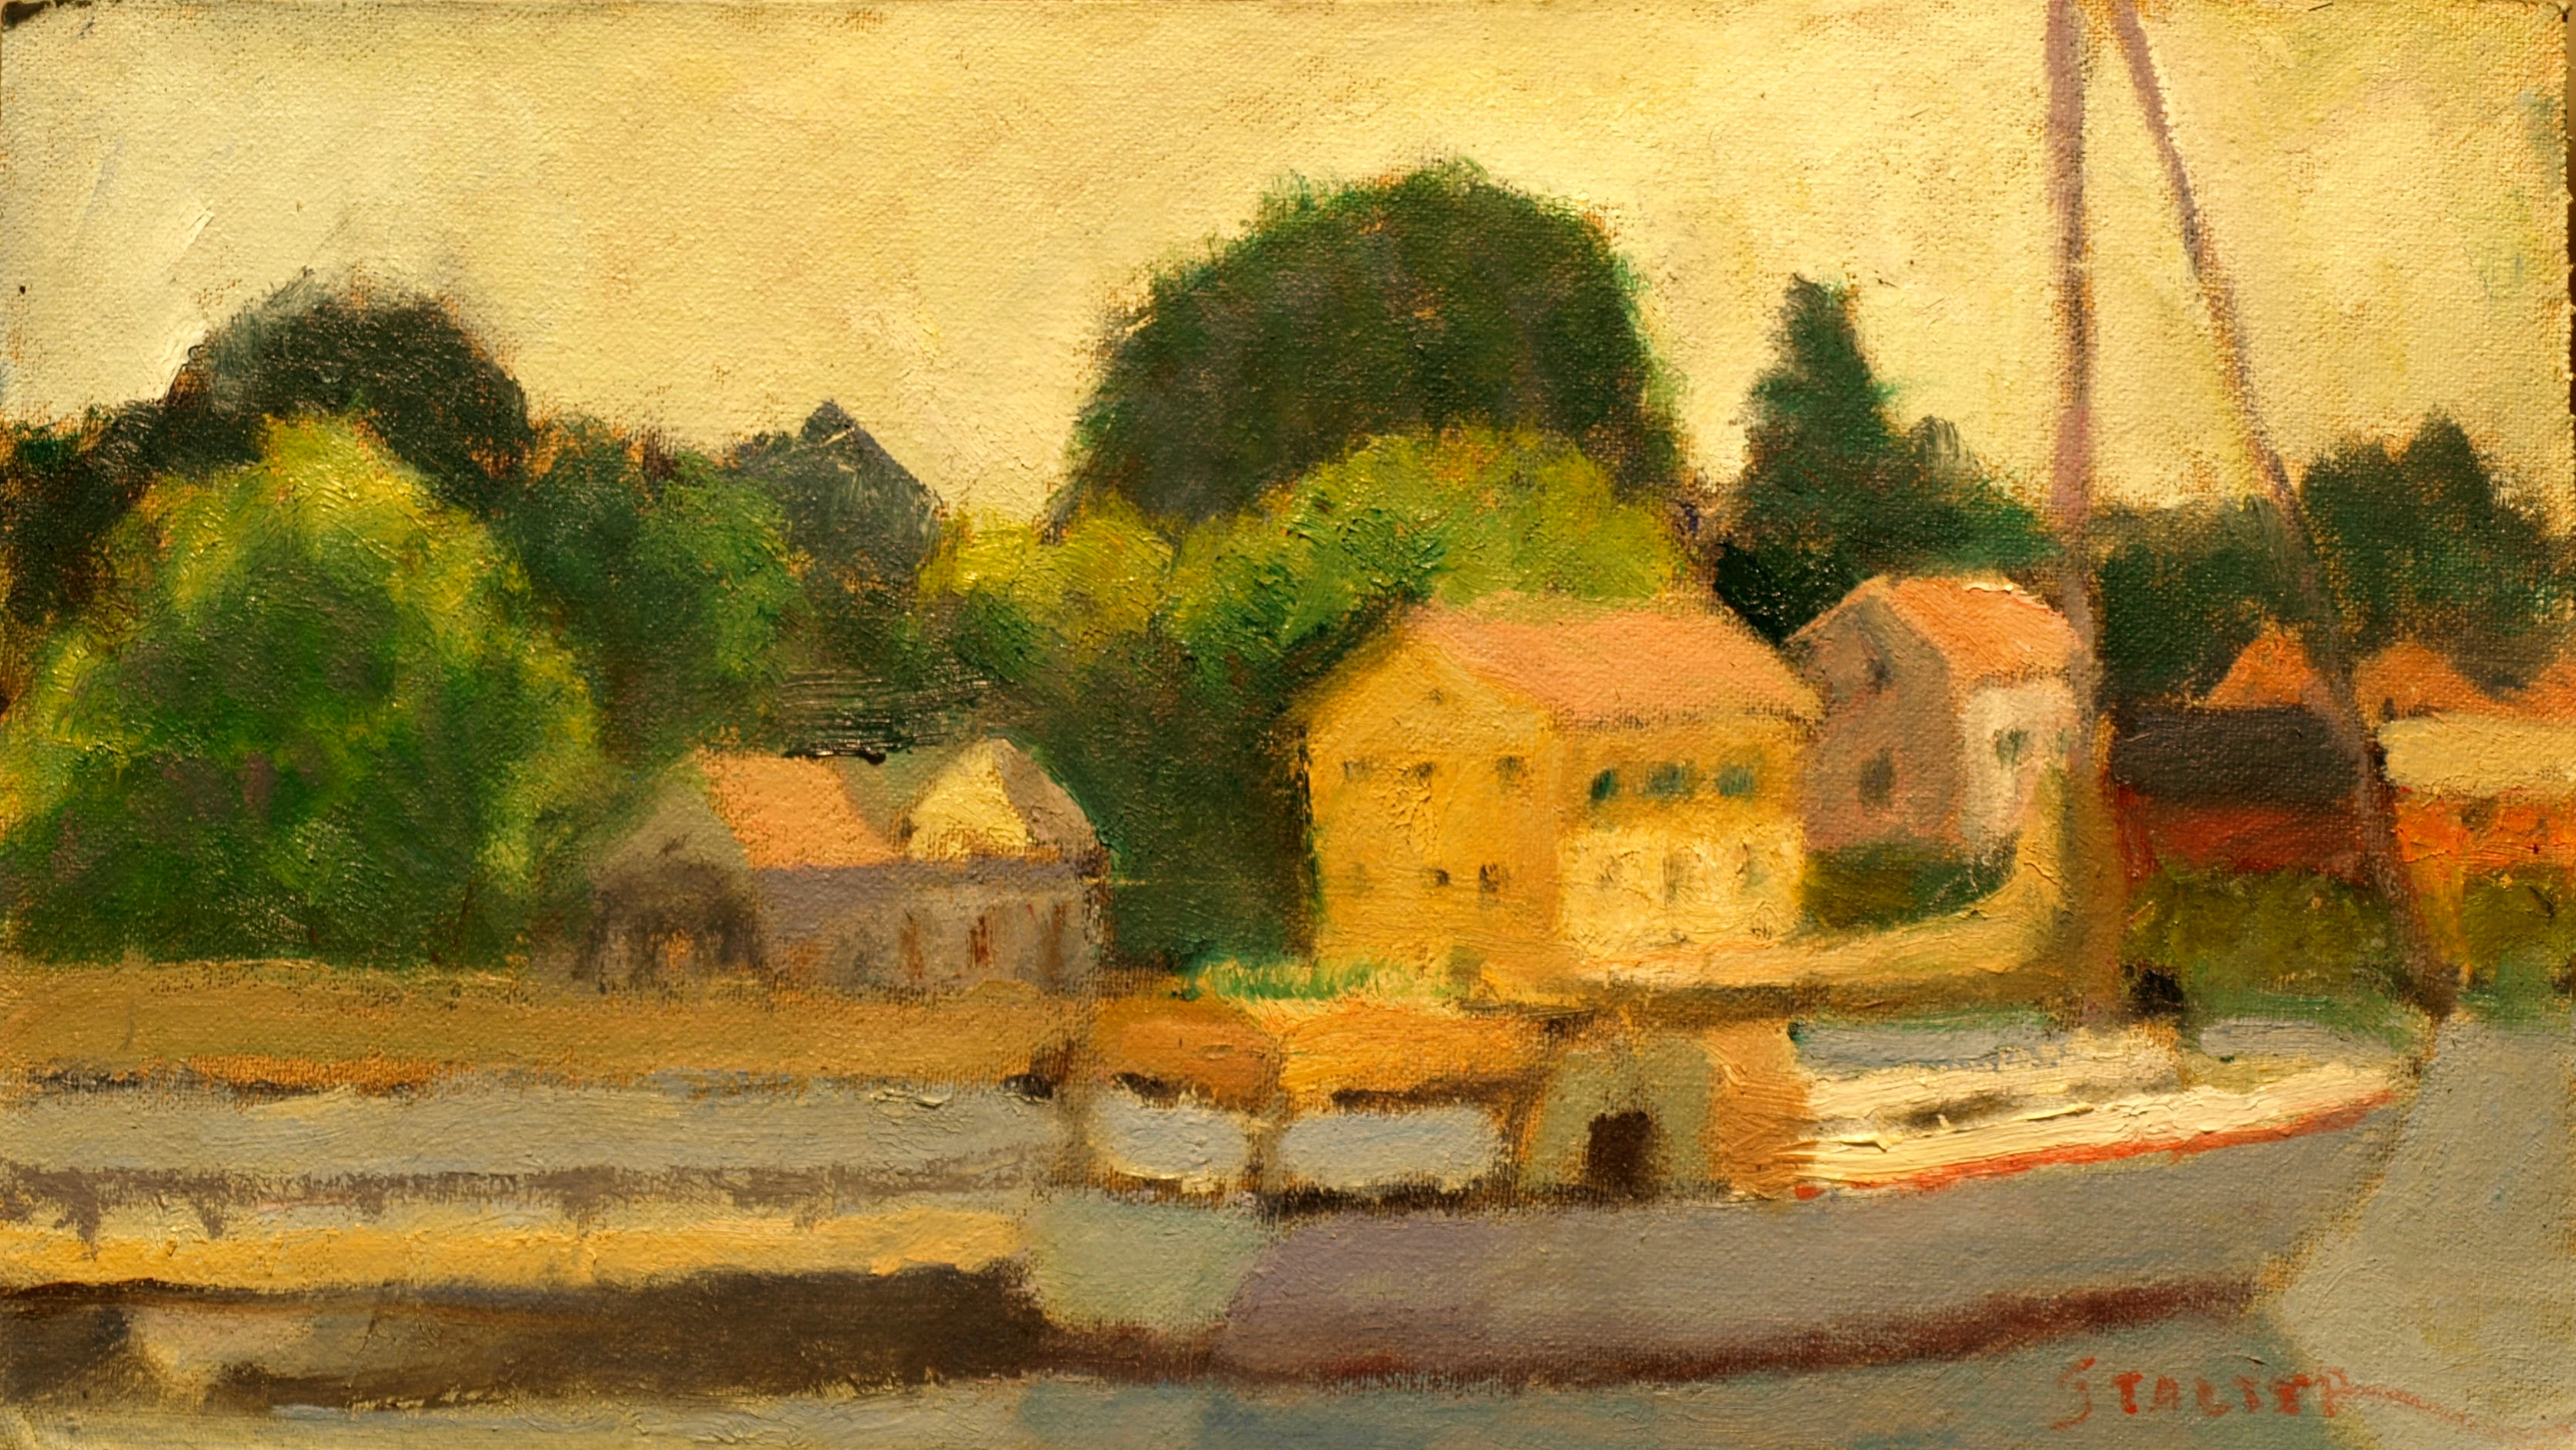 Docked Sailboat, Oil on Canvas on Panel, 8 x 14 Inches, by Richard Stalter, $220